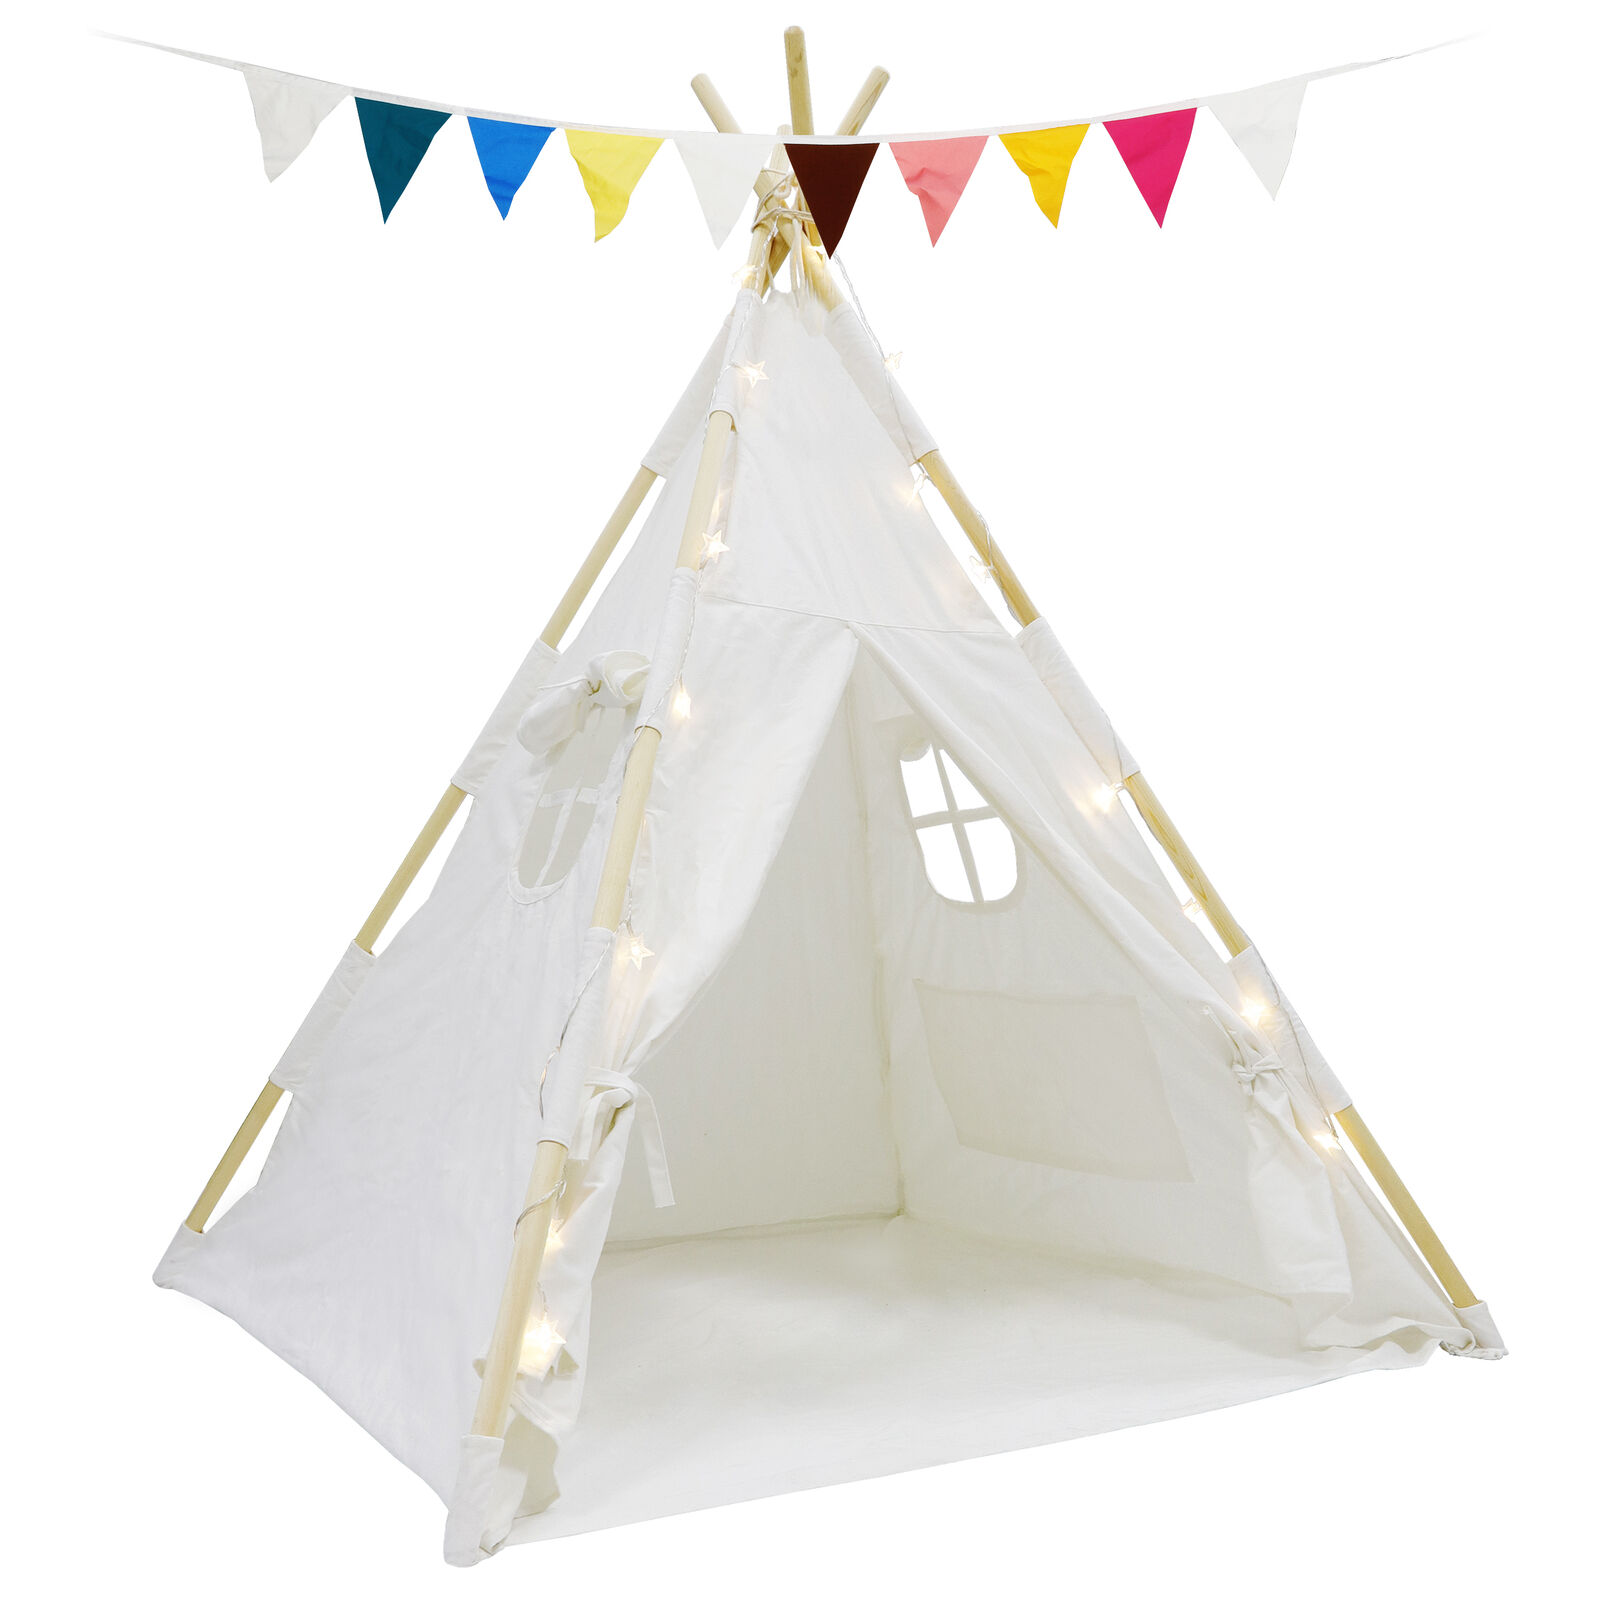 Kids Teepee Natural Cotton Play Tent Tents Playhouse Toddlers Fun W  LED Lights Outdoor Toys & Structures